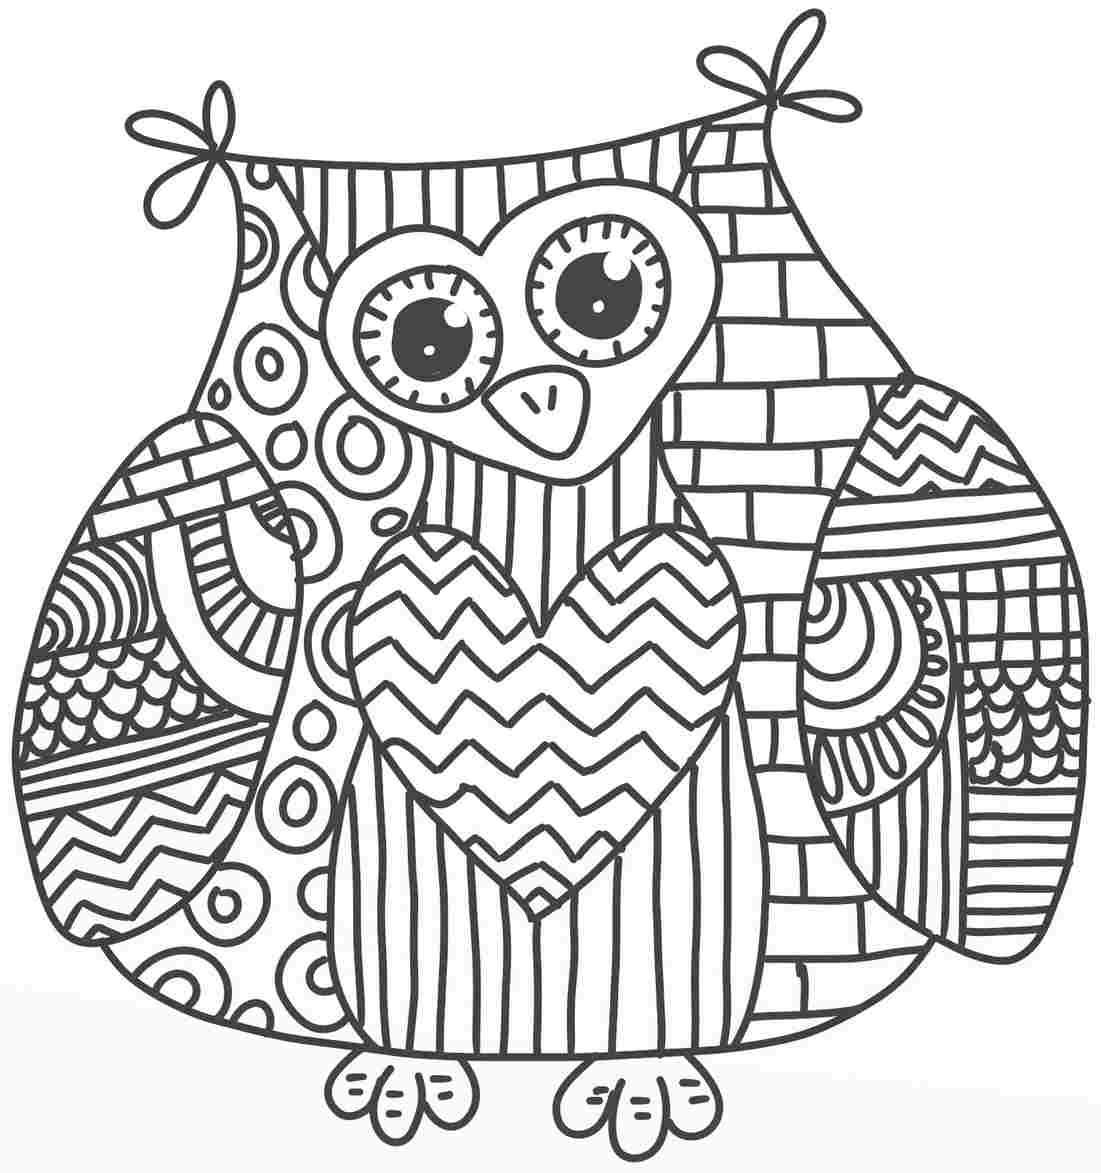 Coloring Pages Free Printable Adults at GetDrawings.com | Free for ...